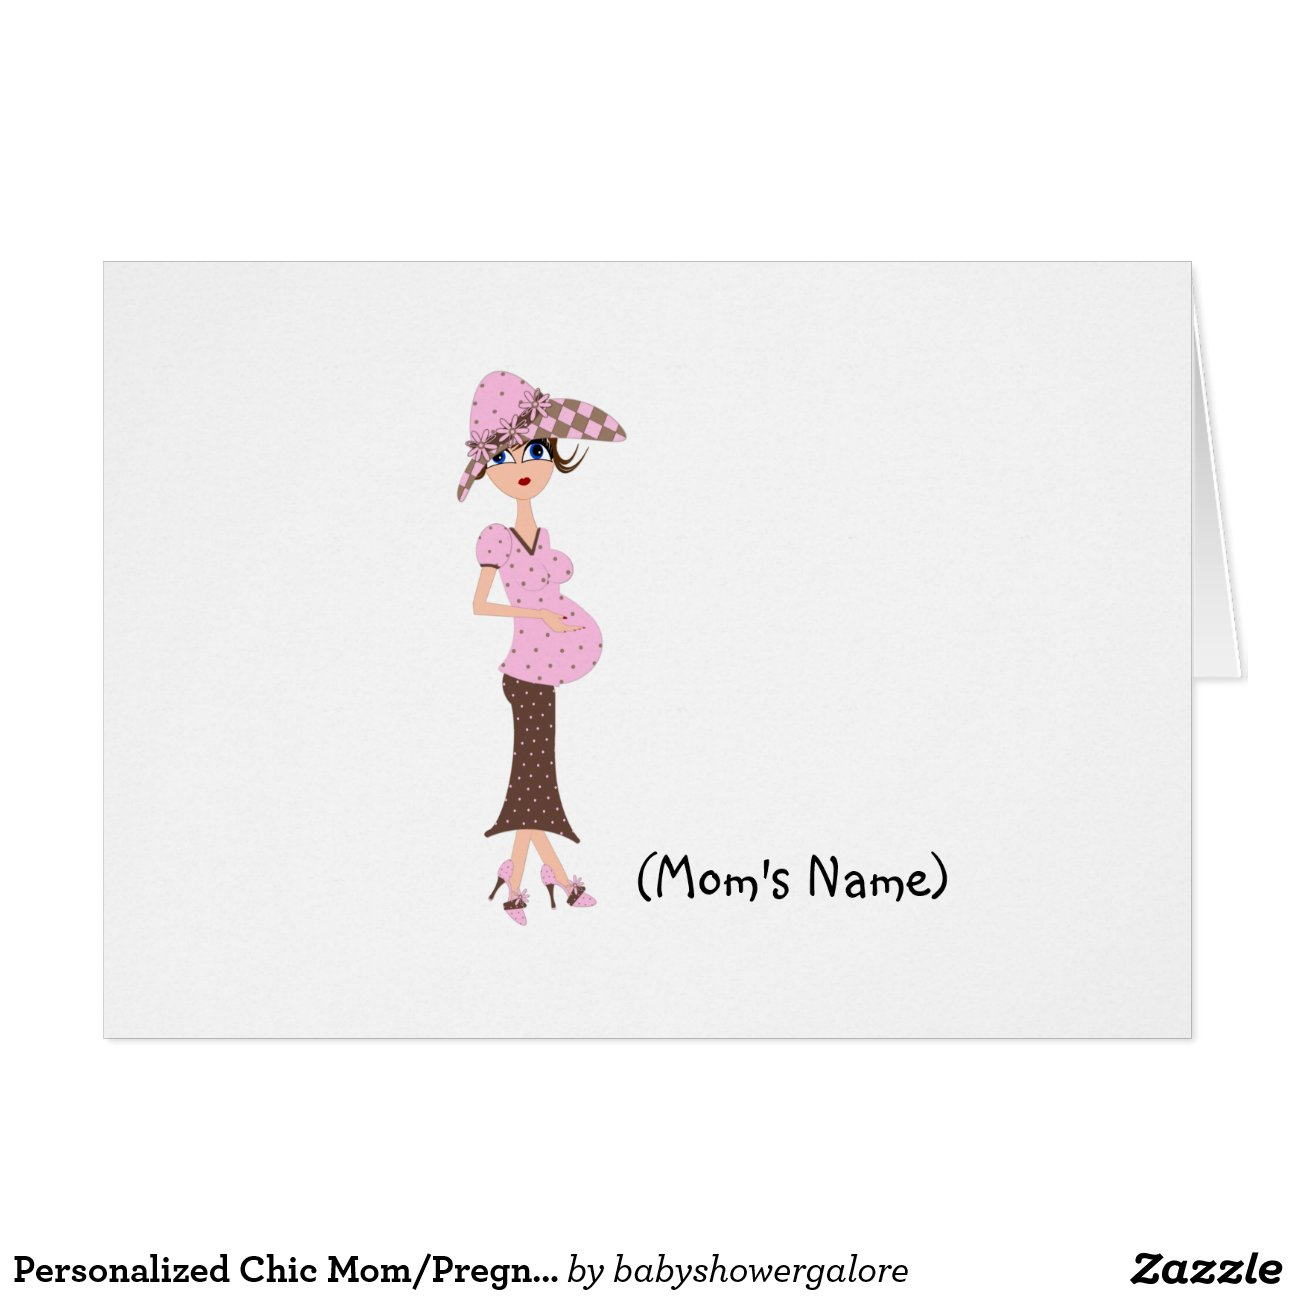 Personalized Chic Mom/Pregnant Woman Stationery Greeting